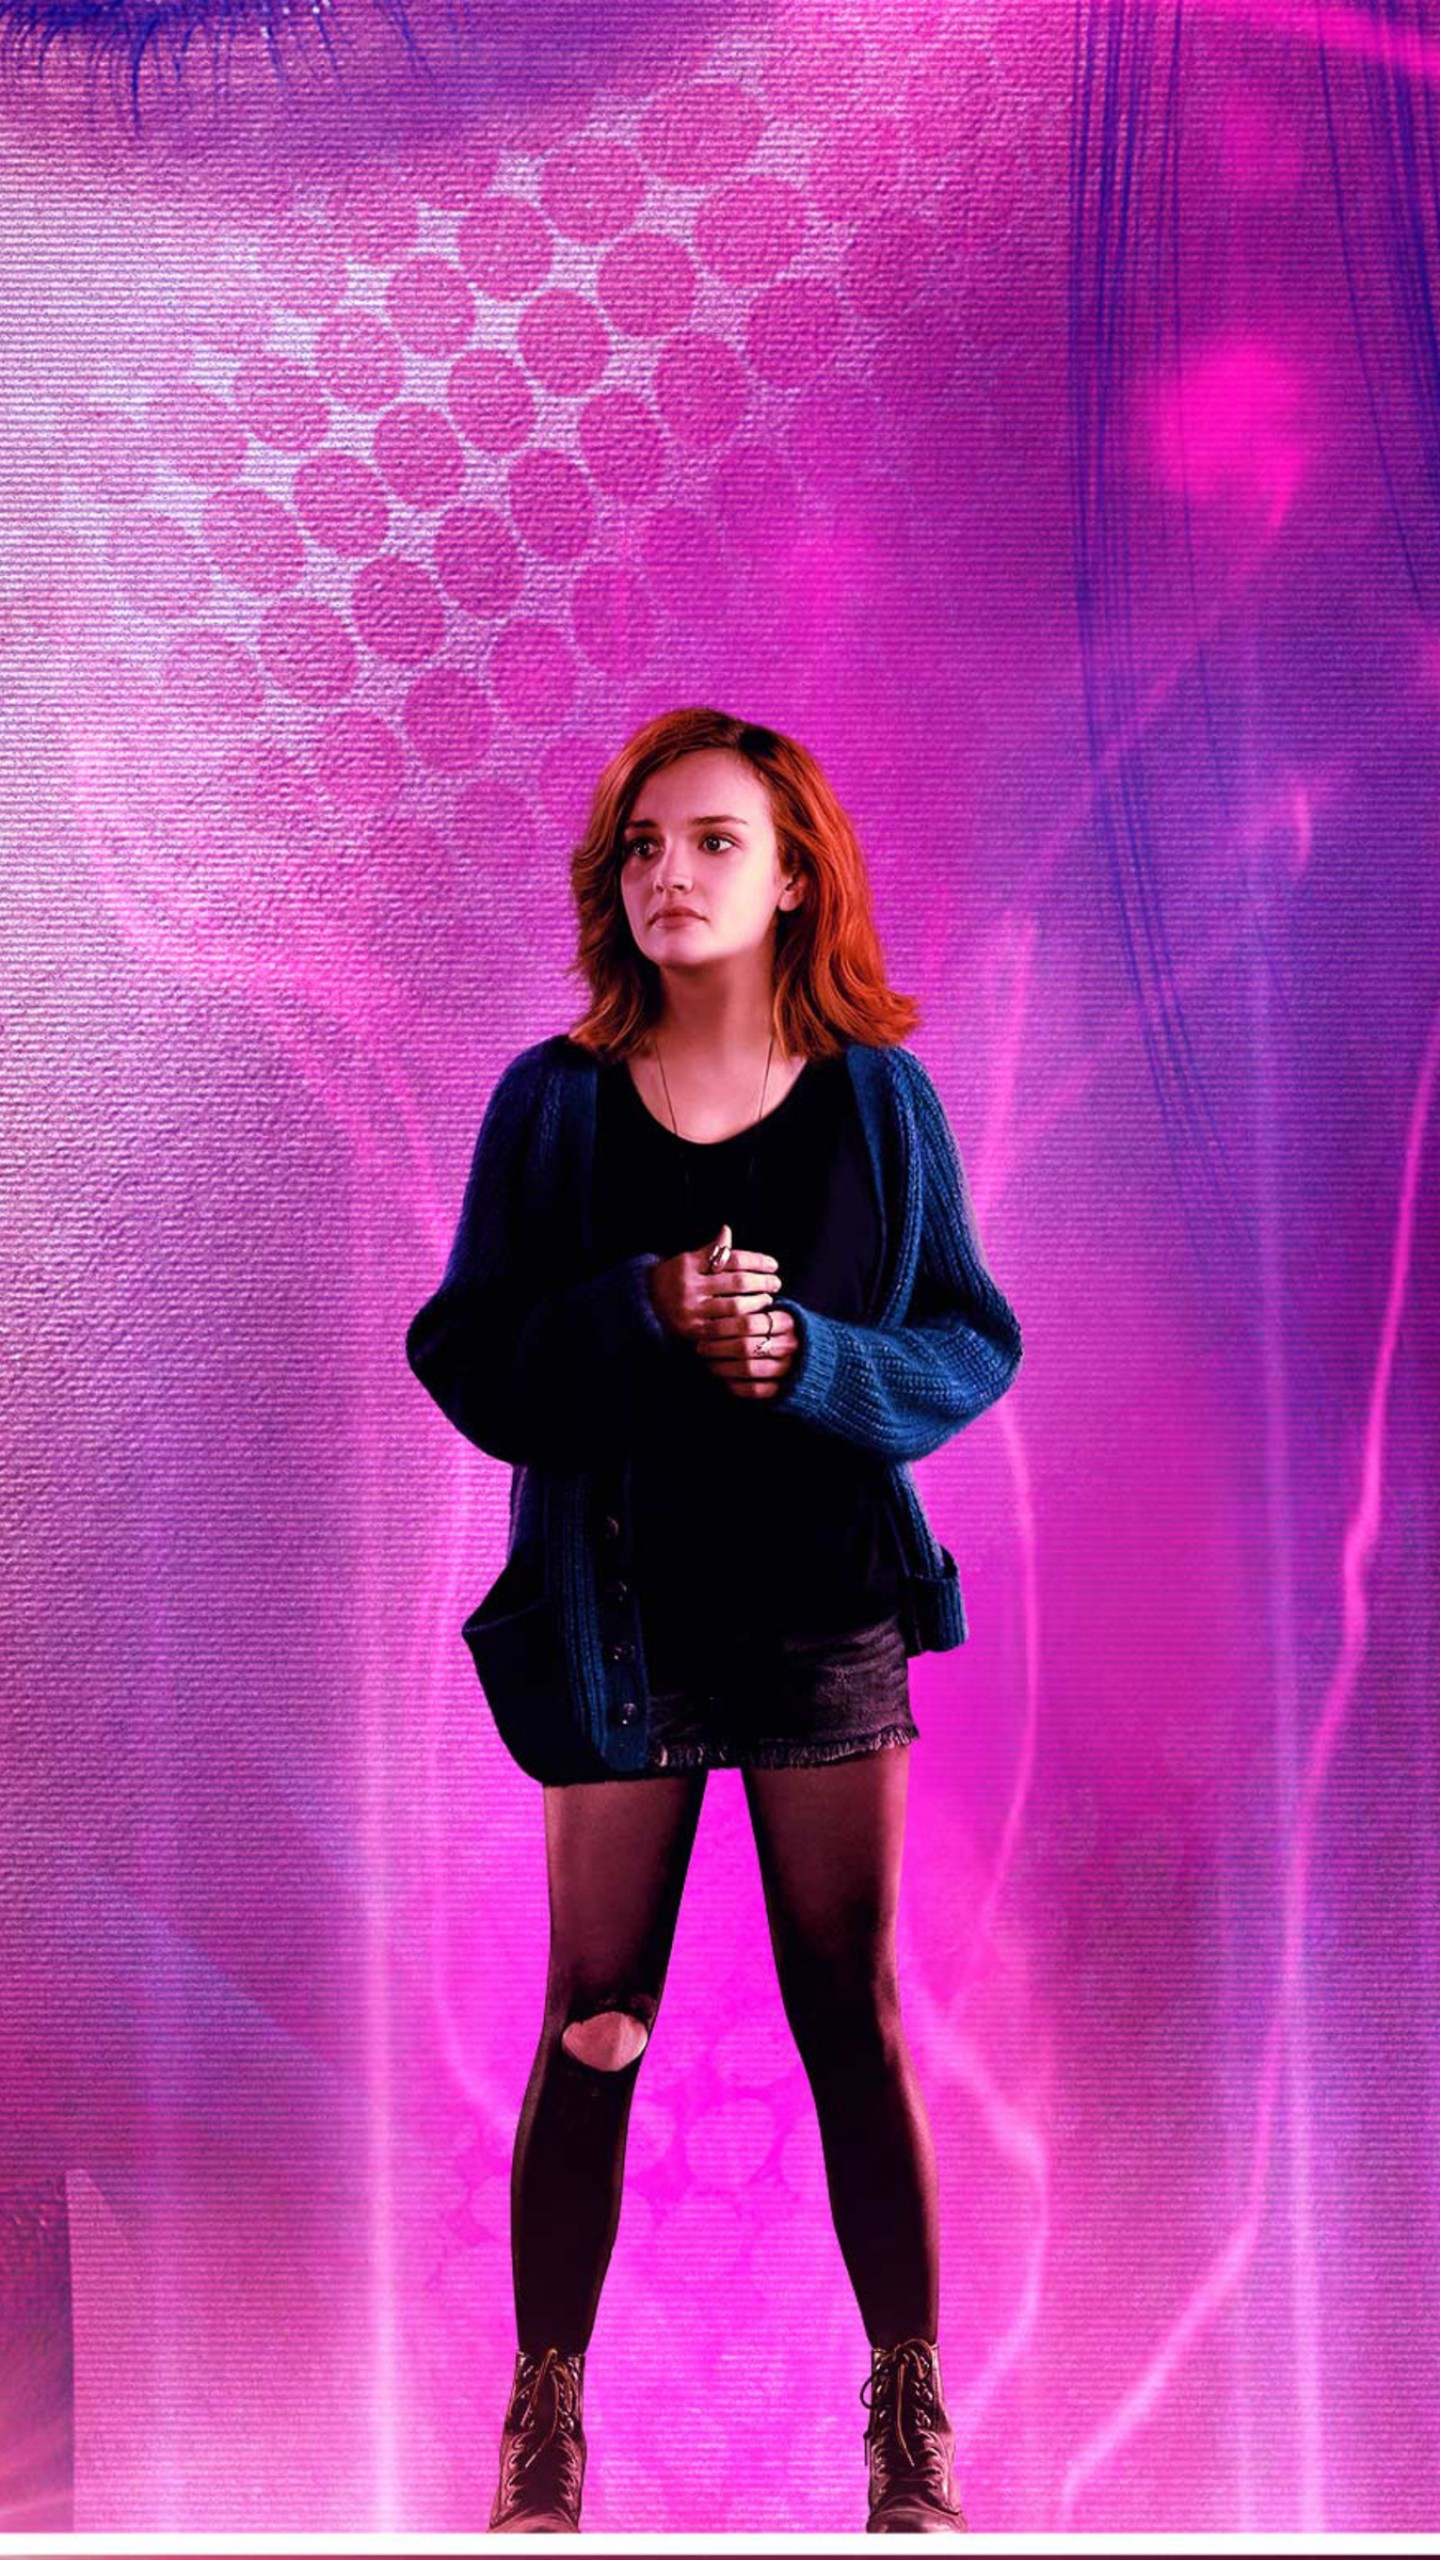 Wallpaper Ready Player One Olivia Cooke 4k Movies 17558